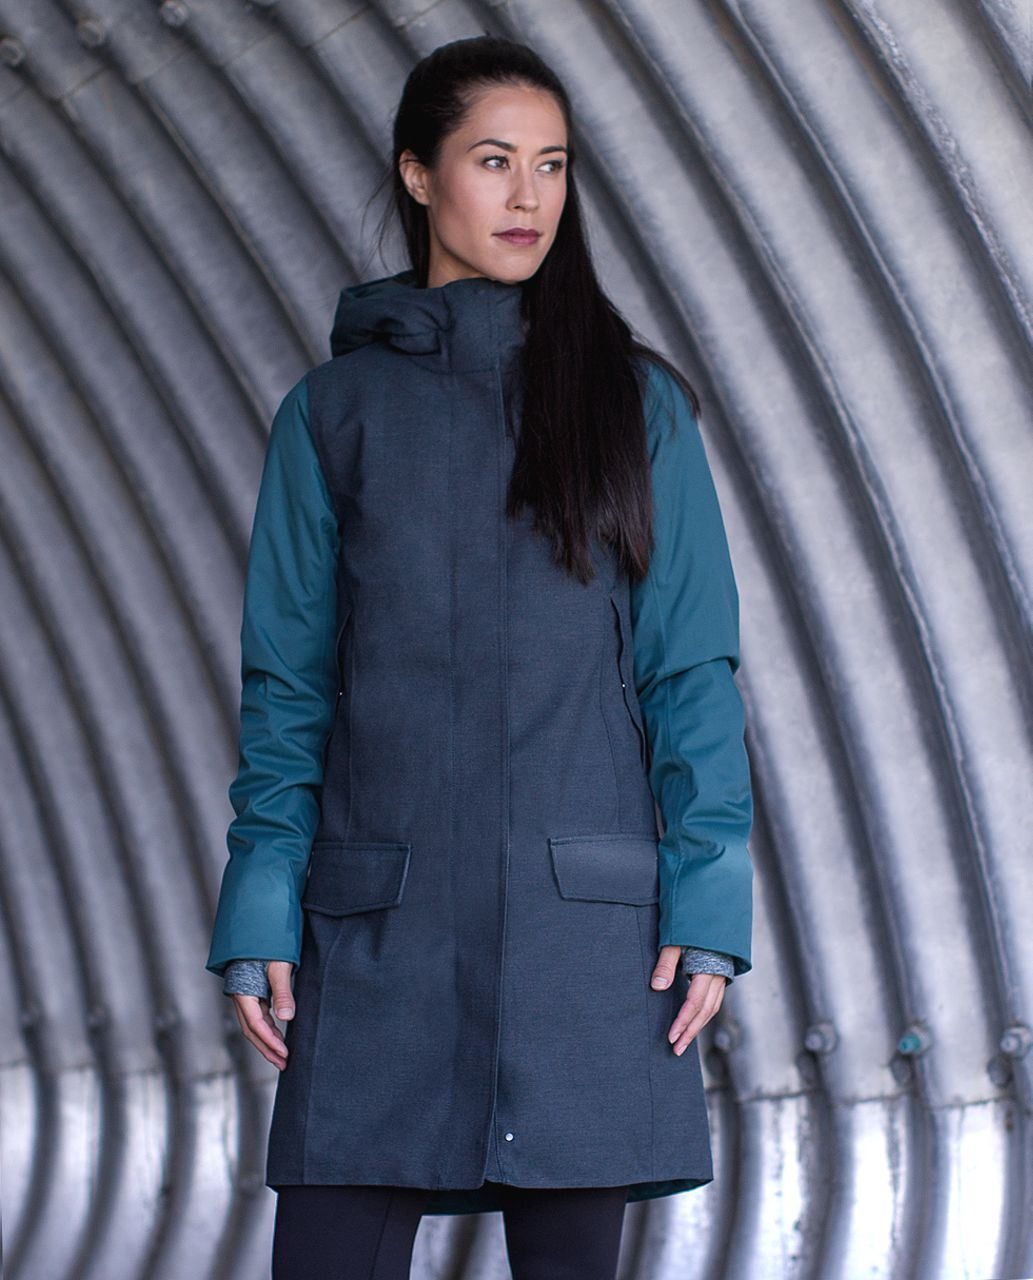 Lululemon Blizzard Parka - Fuel Green / Heathered Black / Fuel Green